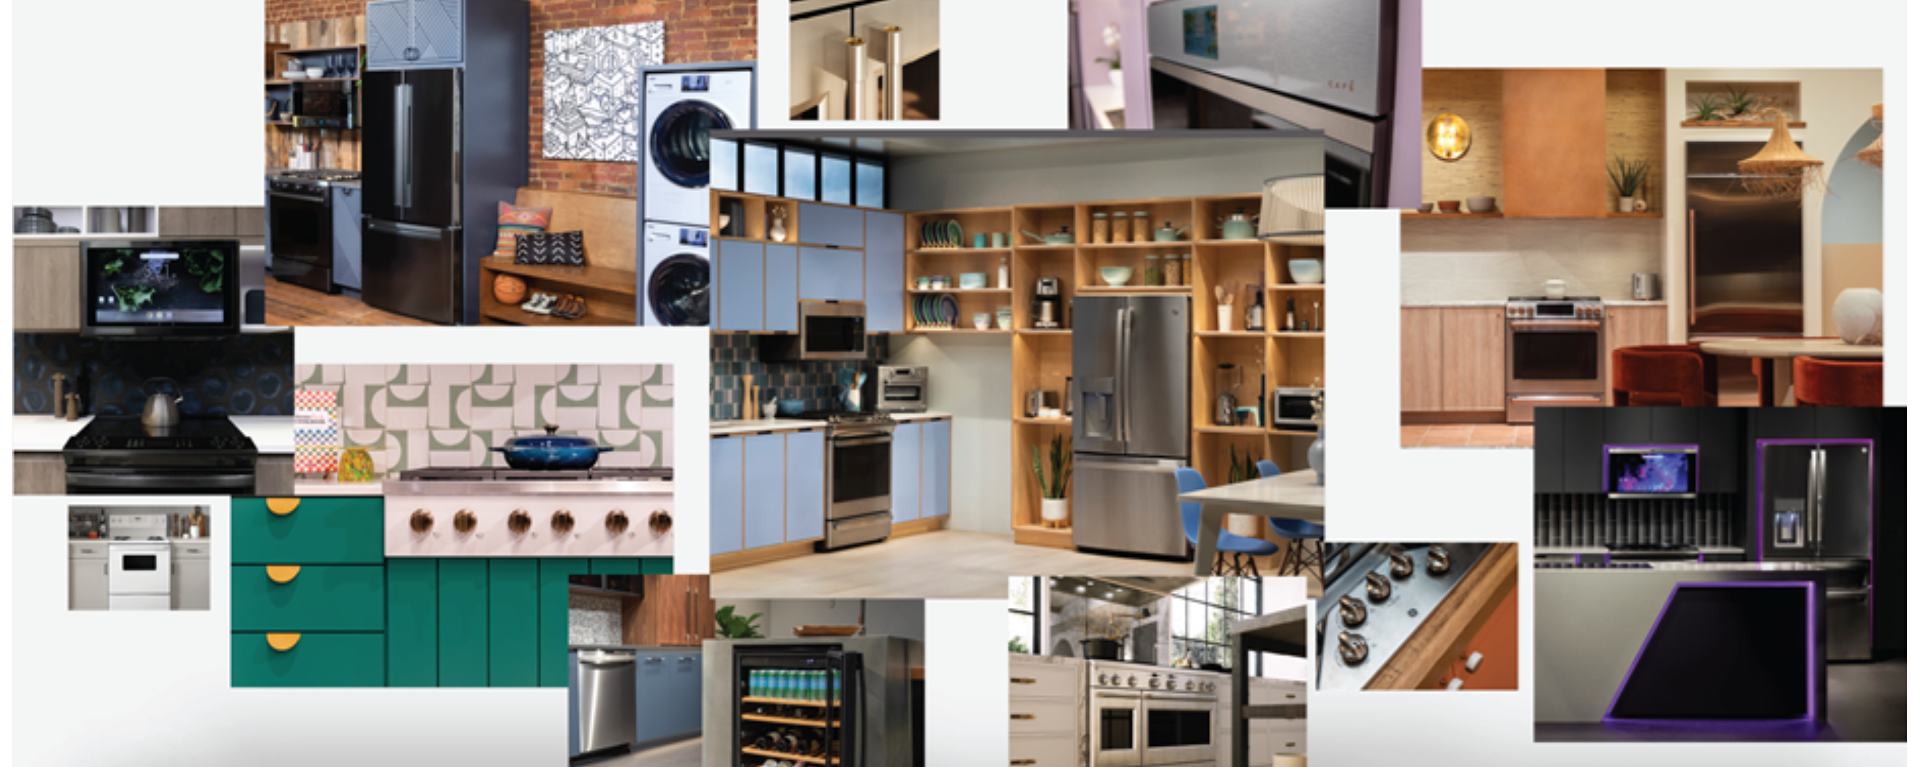 KBIS 2021 Photo Collage Cropped